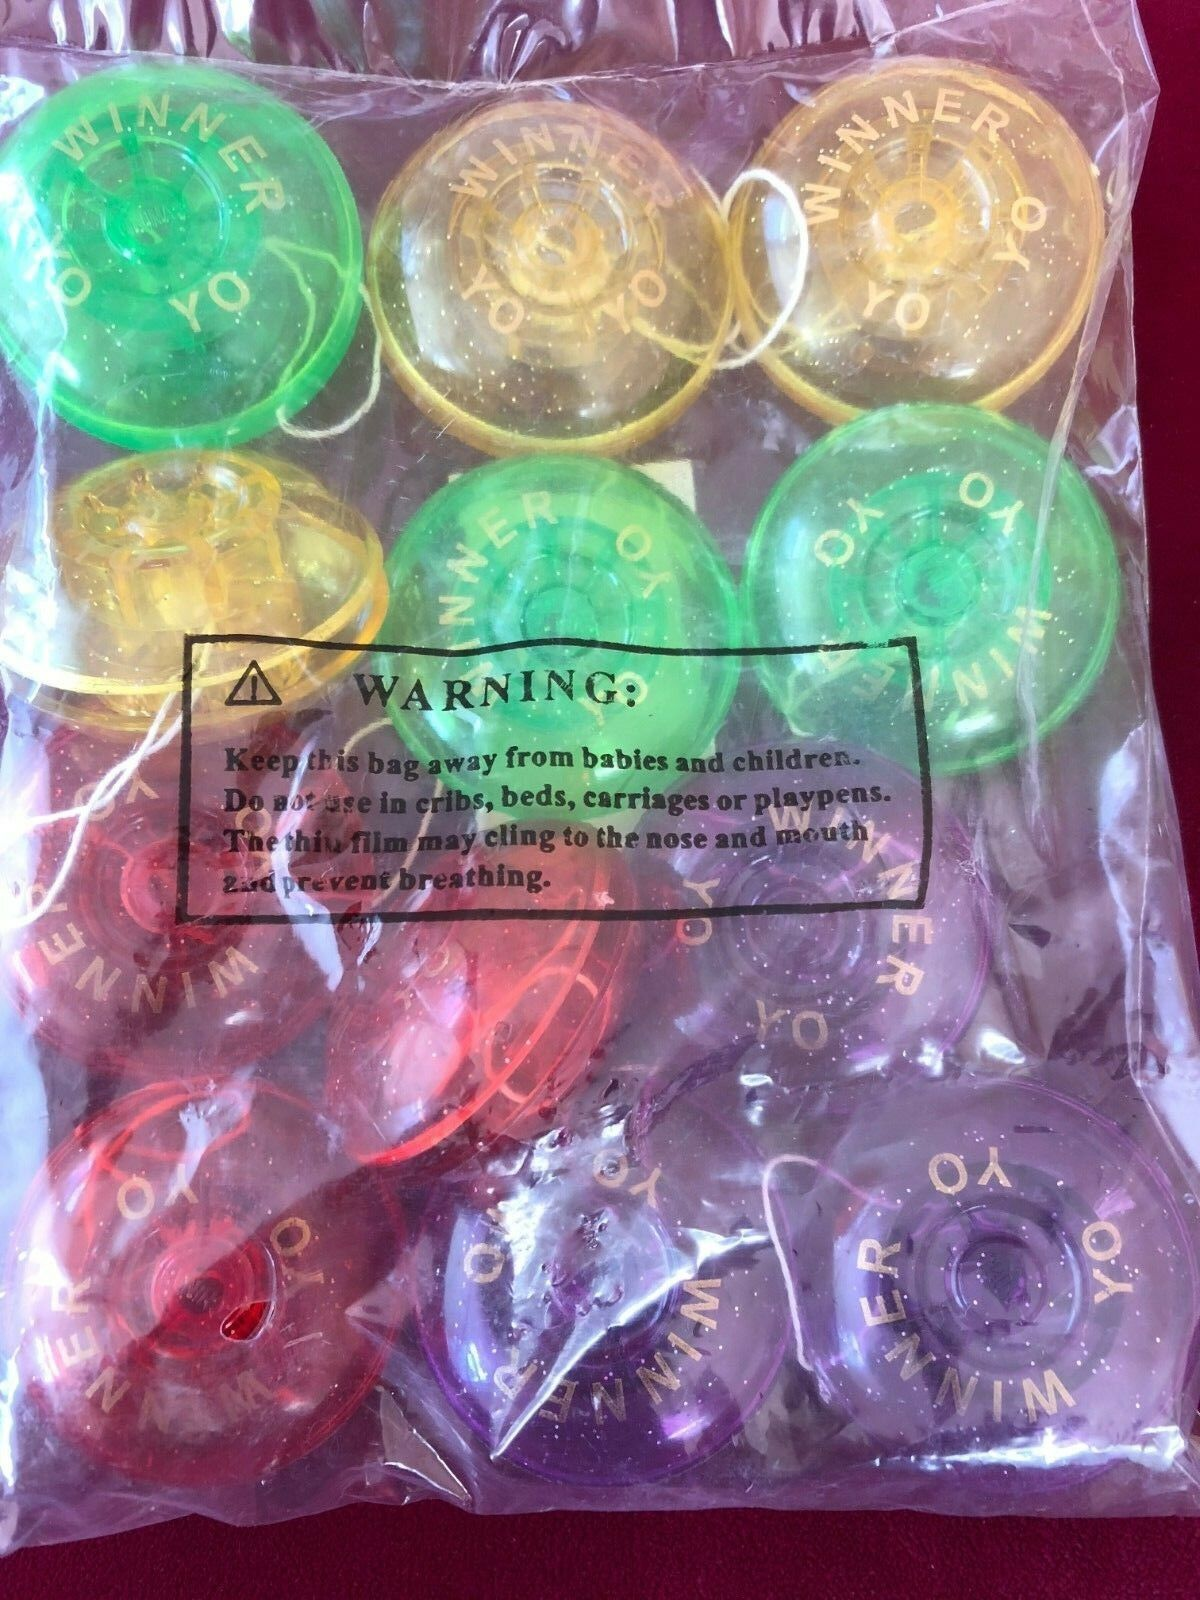 12 YOYO'S New in Sealed Bag. Full Size YOYO'S Mixed colors